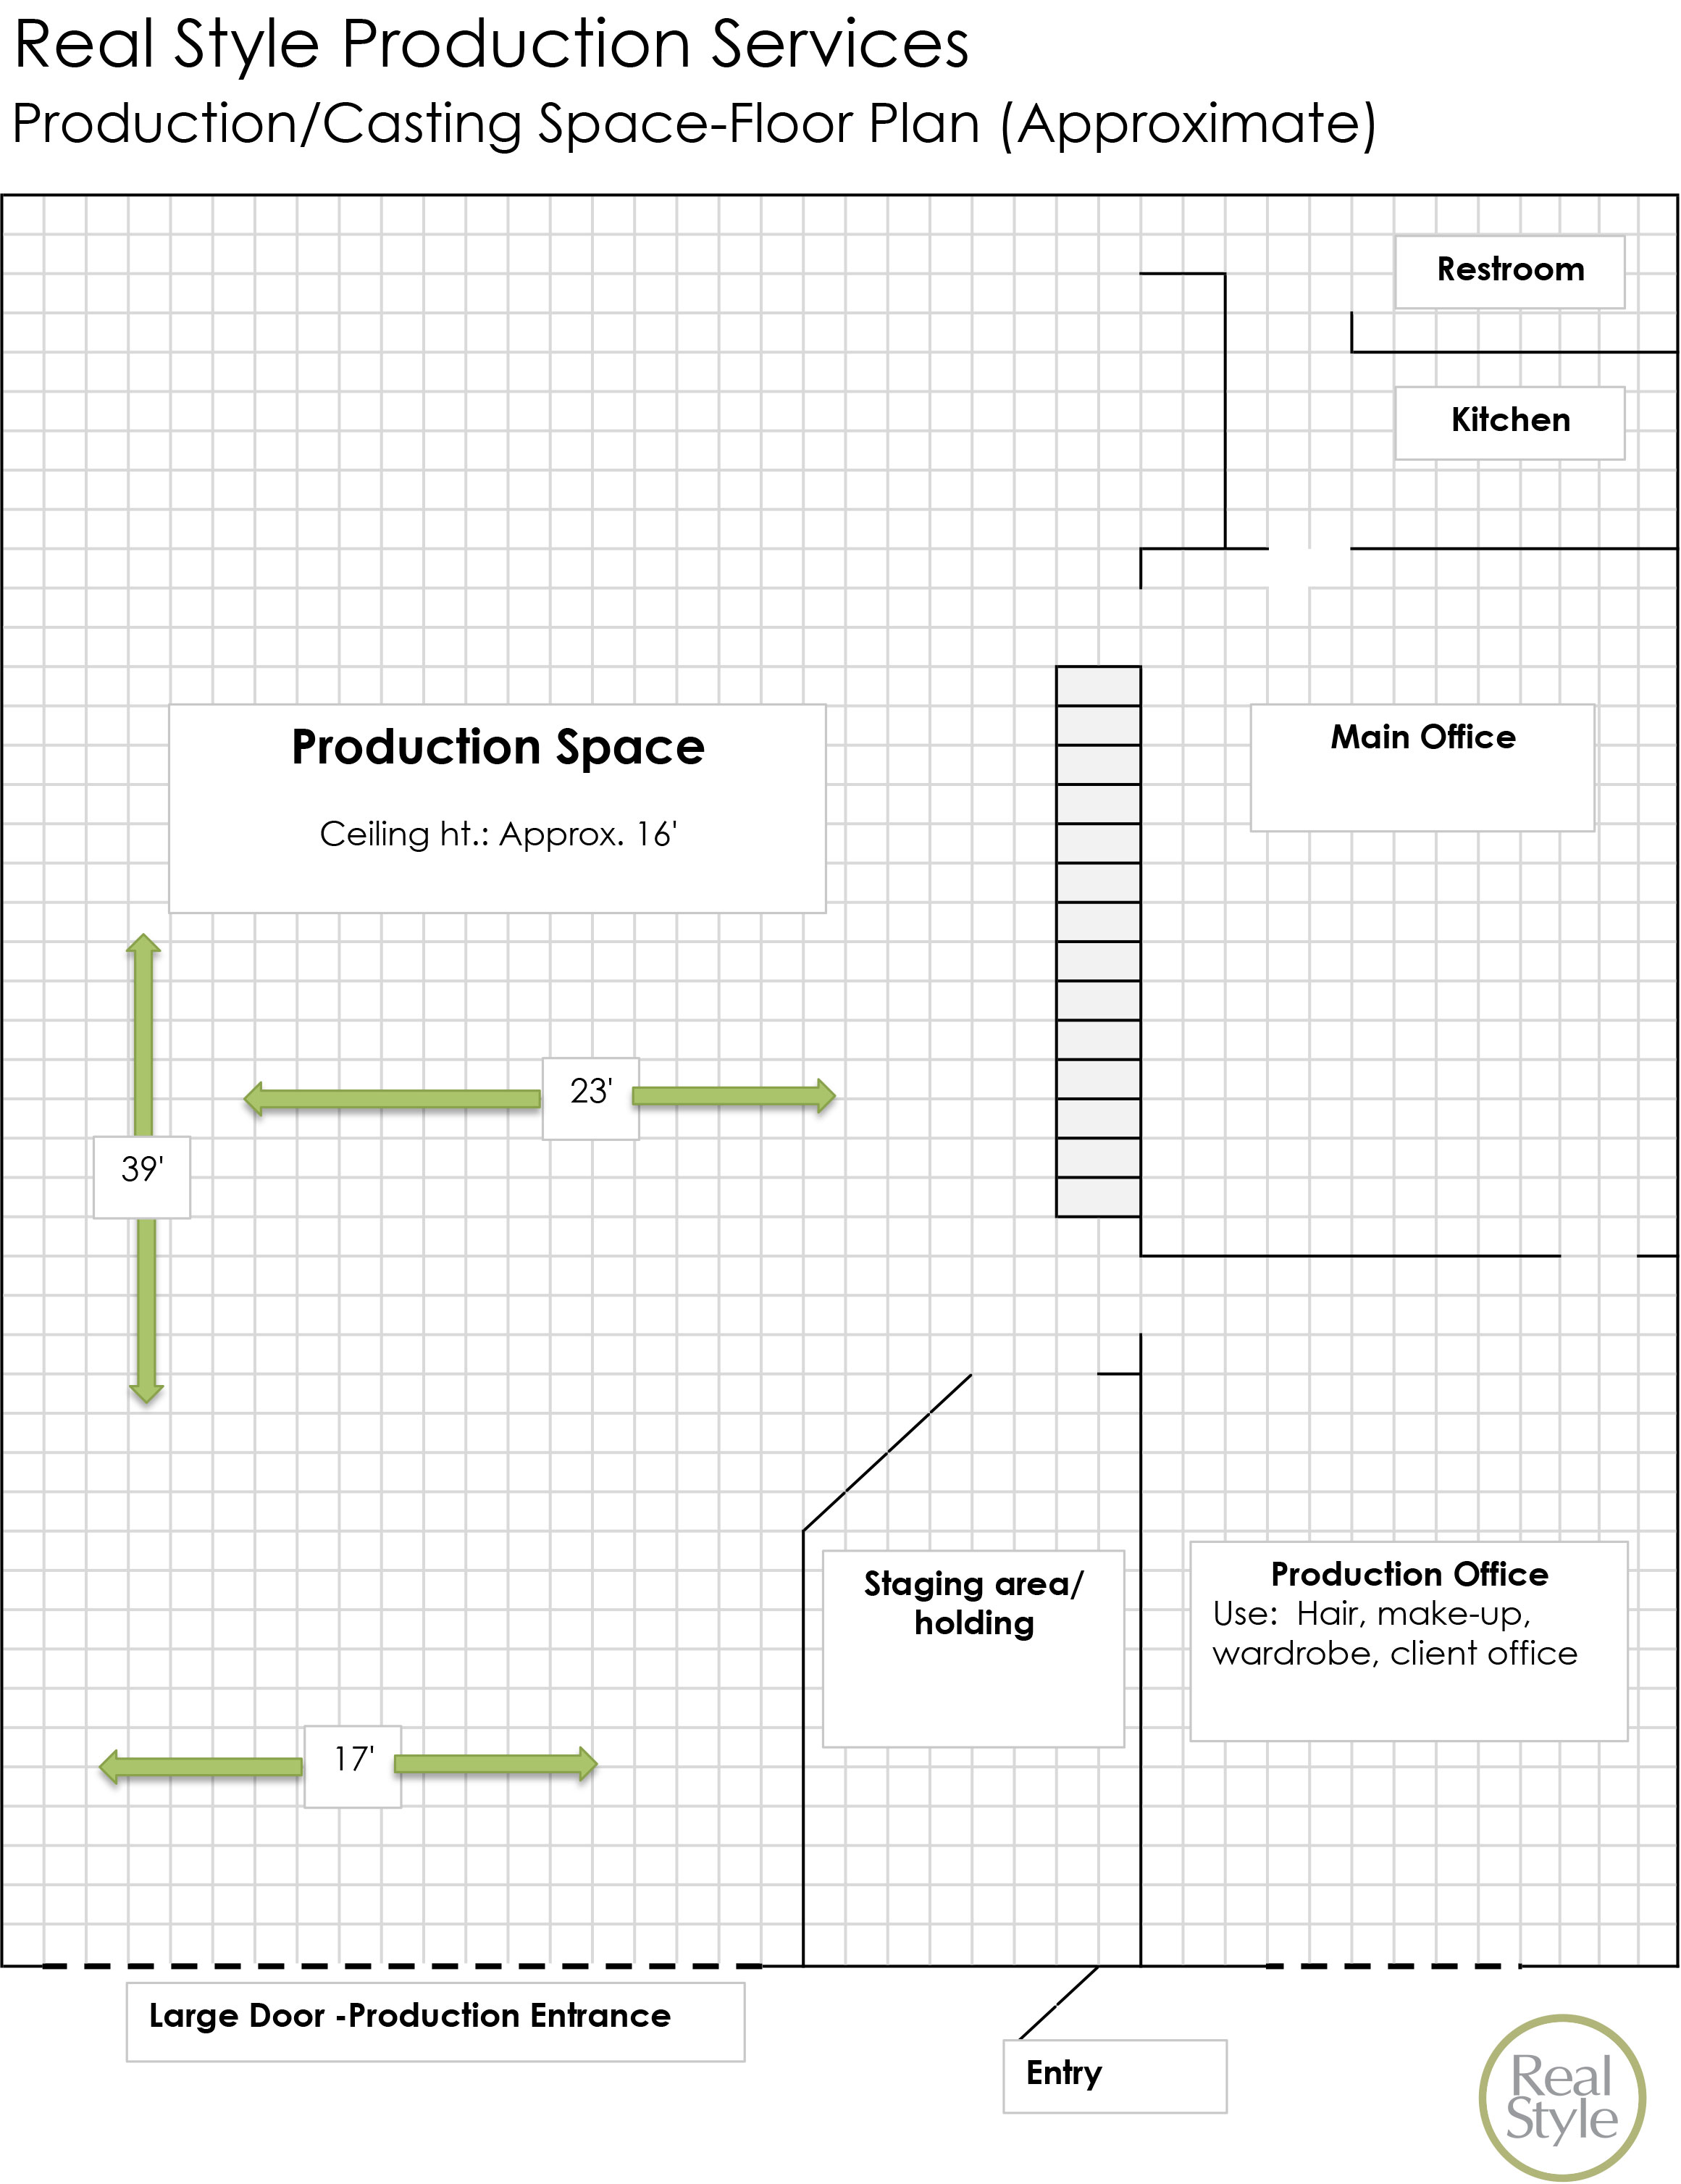 Real_Style_Rental_Studio_Floorplan